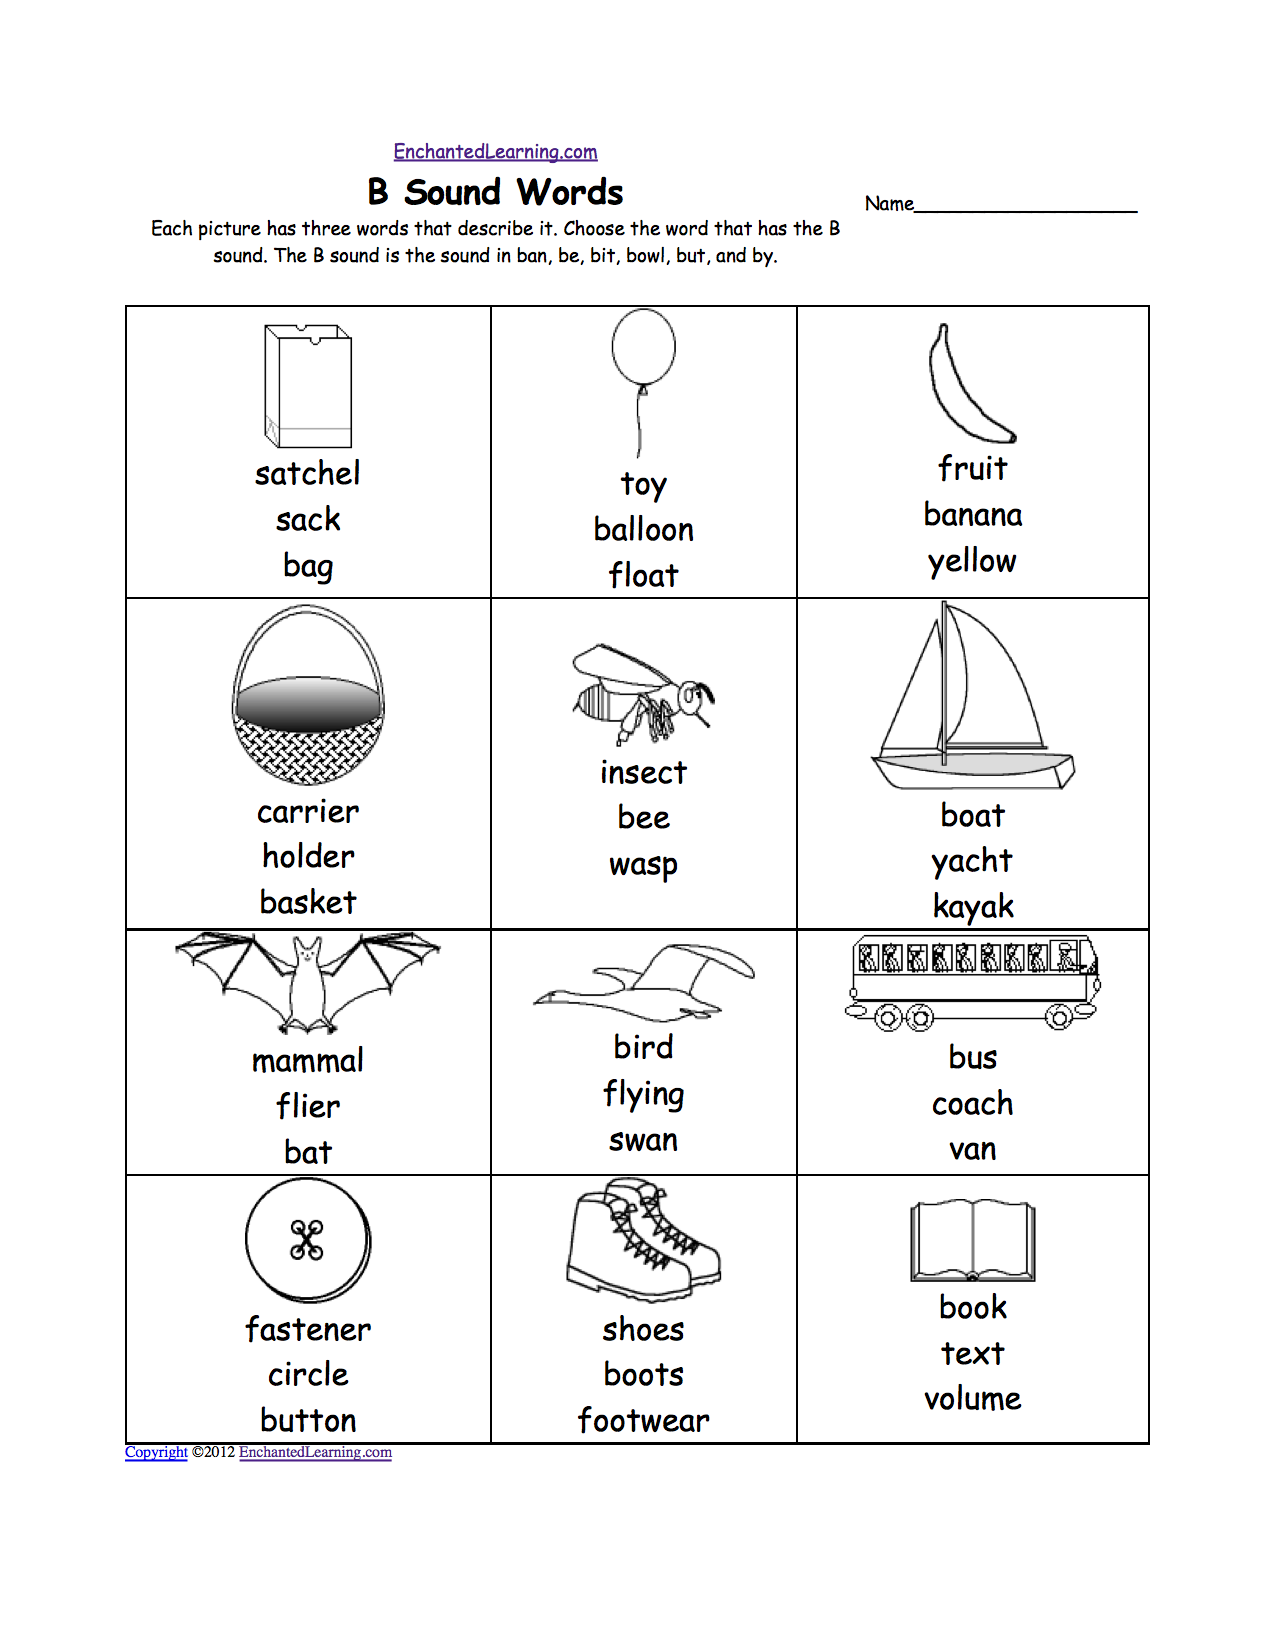 Aldiablosus  Winsome Phonics Worksheets Multiple Choice Worksheets To Print  With Lovely Quotbquot Sound Phonics Worksheet Multiple Choice Each Picture Has Three Words That Describe It Choose The Word That Has A Quotbquot Sound The Quotbquot Sound Is The Sound  With Endearing Handwriting Without Tears Printable Worksheets Also Evaluating Variable Expressions Worksheet In Addition Renewable Energy Worksheet And Faces Edges And Vertices Worksheet As Well As Irs Schedule D Tax Worksheet Additionally Dividing Fractions By Fractions Worksheet From Enchantedlearningcom With Aldiablosus  Lovely Phonics Worksheets Multiple Choice Worksheets To Print  With Endearing Quotbquot Sound Phonics Worksheet Multiple Choice Each Picture Has Three Words That Describe It Choose The Word That Has A Quotbquot Sound The Quotbquot Sound Is The Sound  And Winsome Handwriting Without Tears Printable Worksheets Also Evaluating Variable Expressions Worksheet In Addition Renewable Energy Worksheet From Enchantedlearningcom